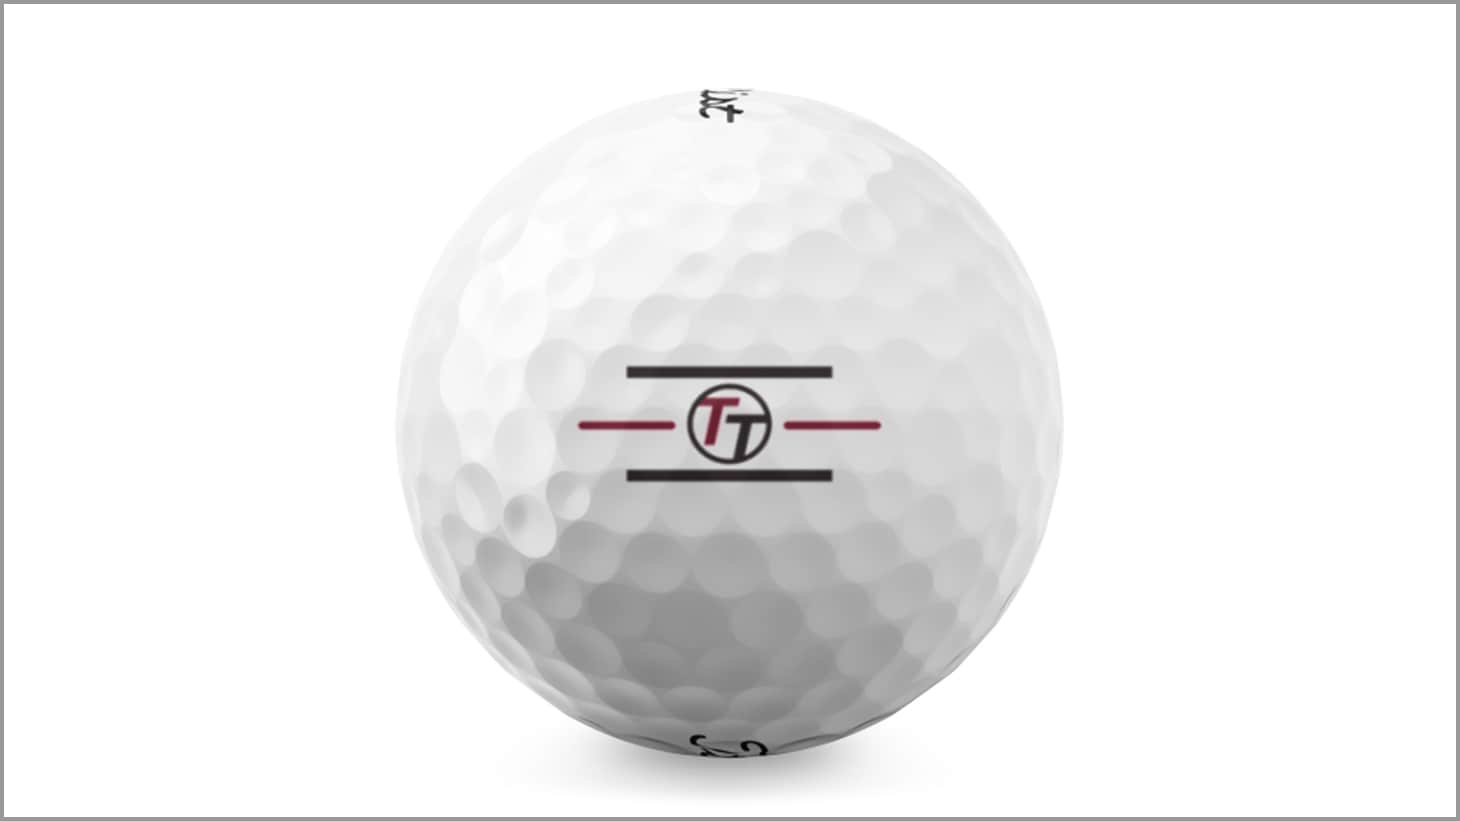 One of the custom alignment logo options available at Titleist.com